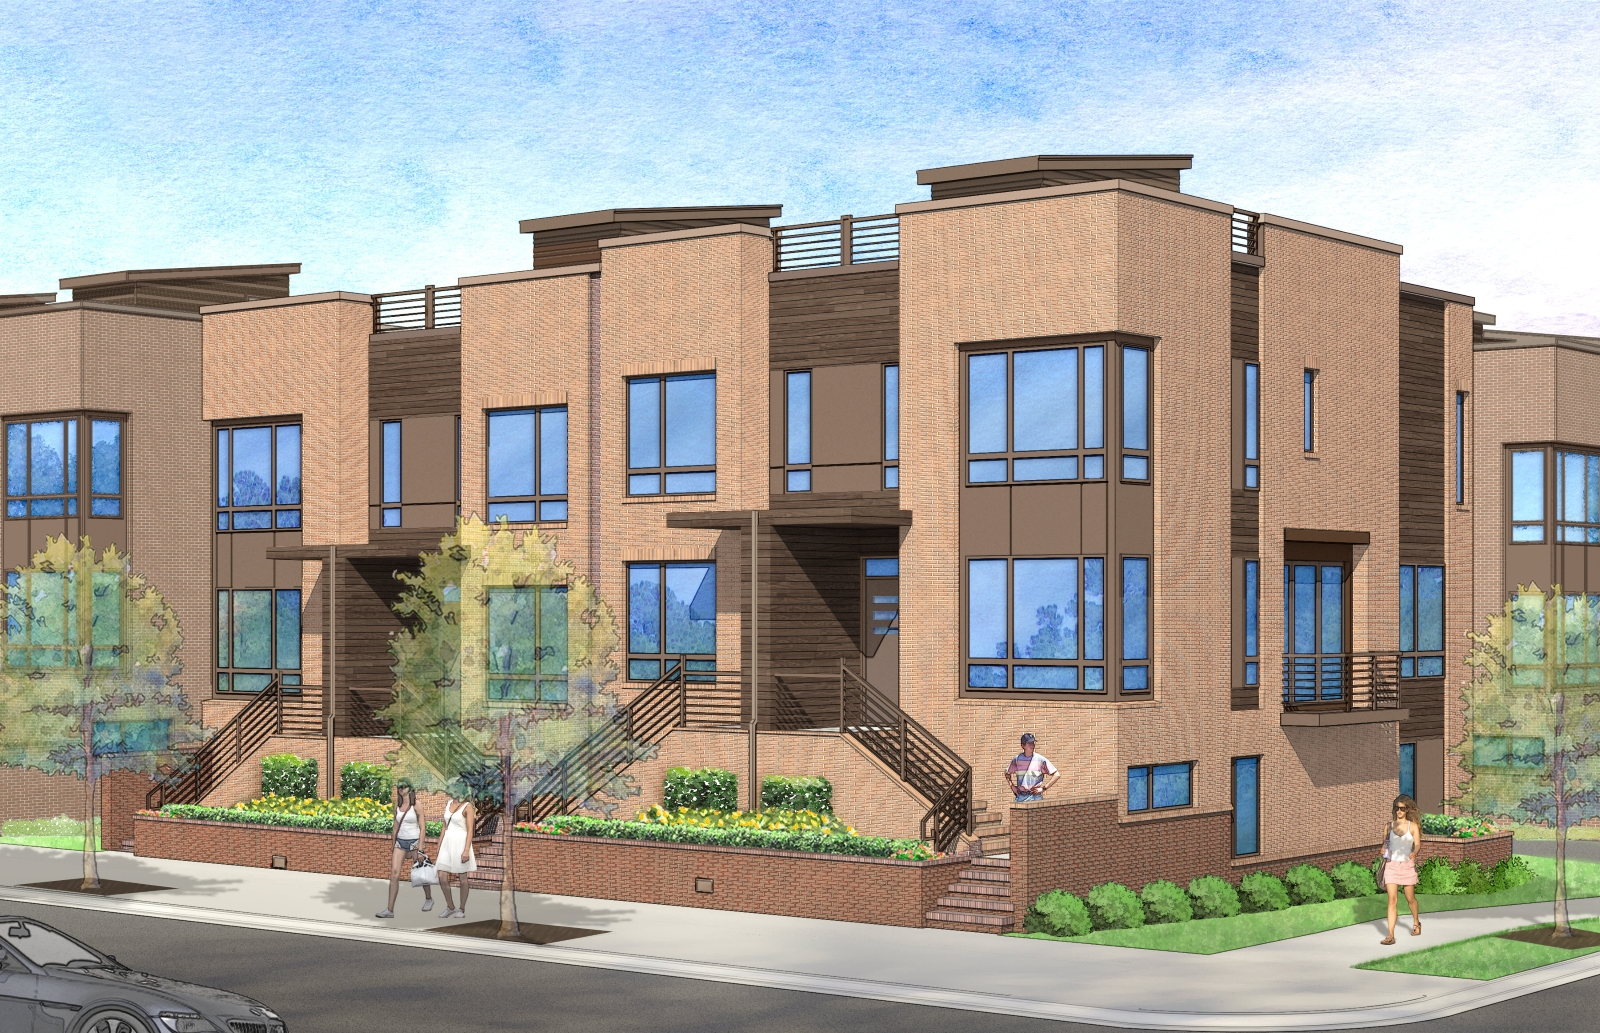 new townhomes at west and lenoir called west lenoir the raleigh connoisseur. Black Bedroom Furniture Sets. Home Design Ideas